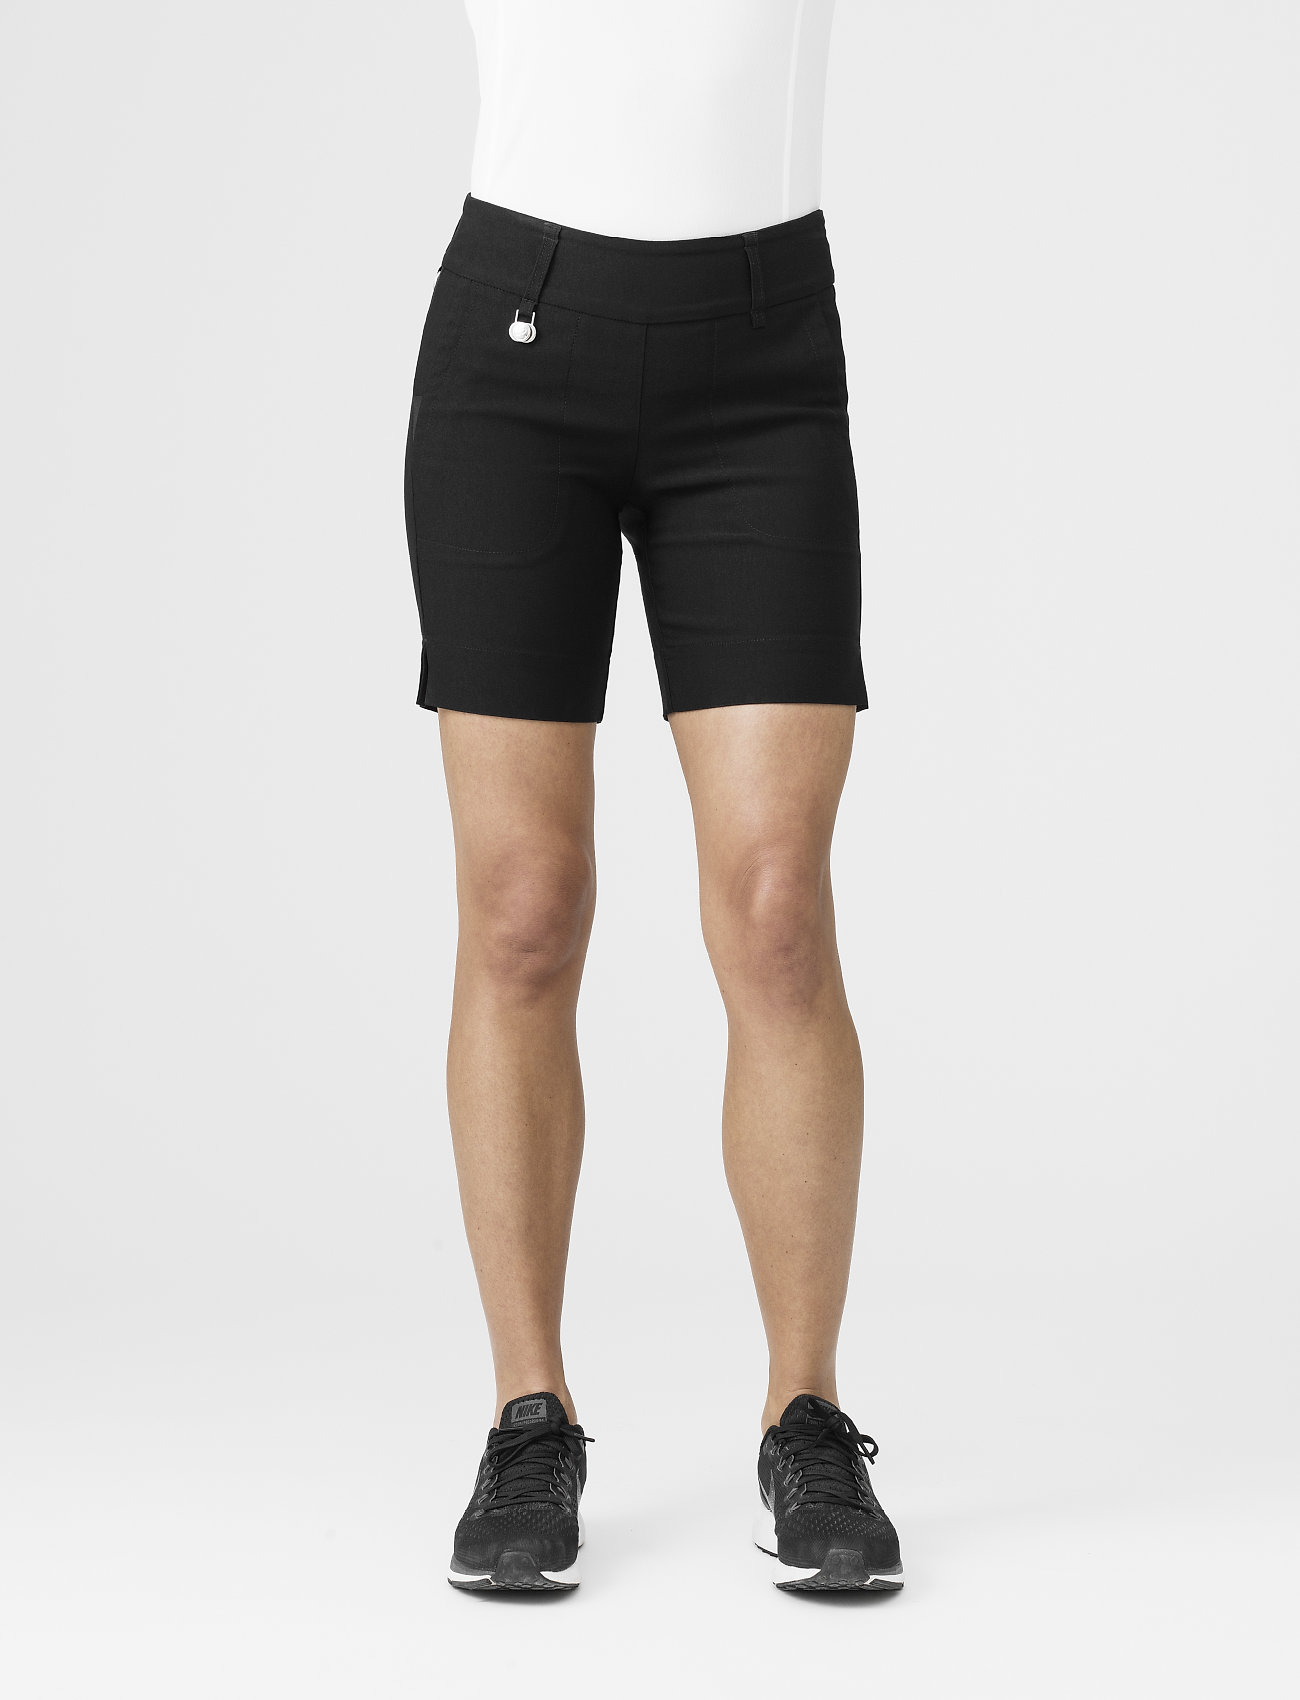 Daily Sports - MAGIC SHORTS 44 CM - golfshorts - black - 0